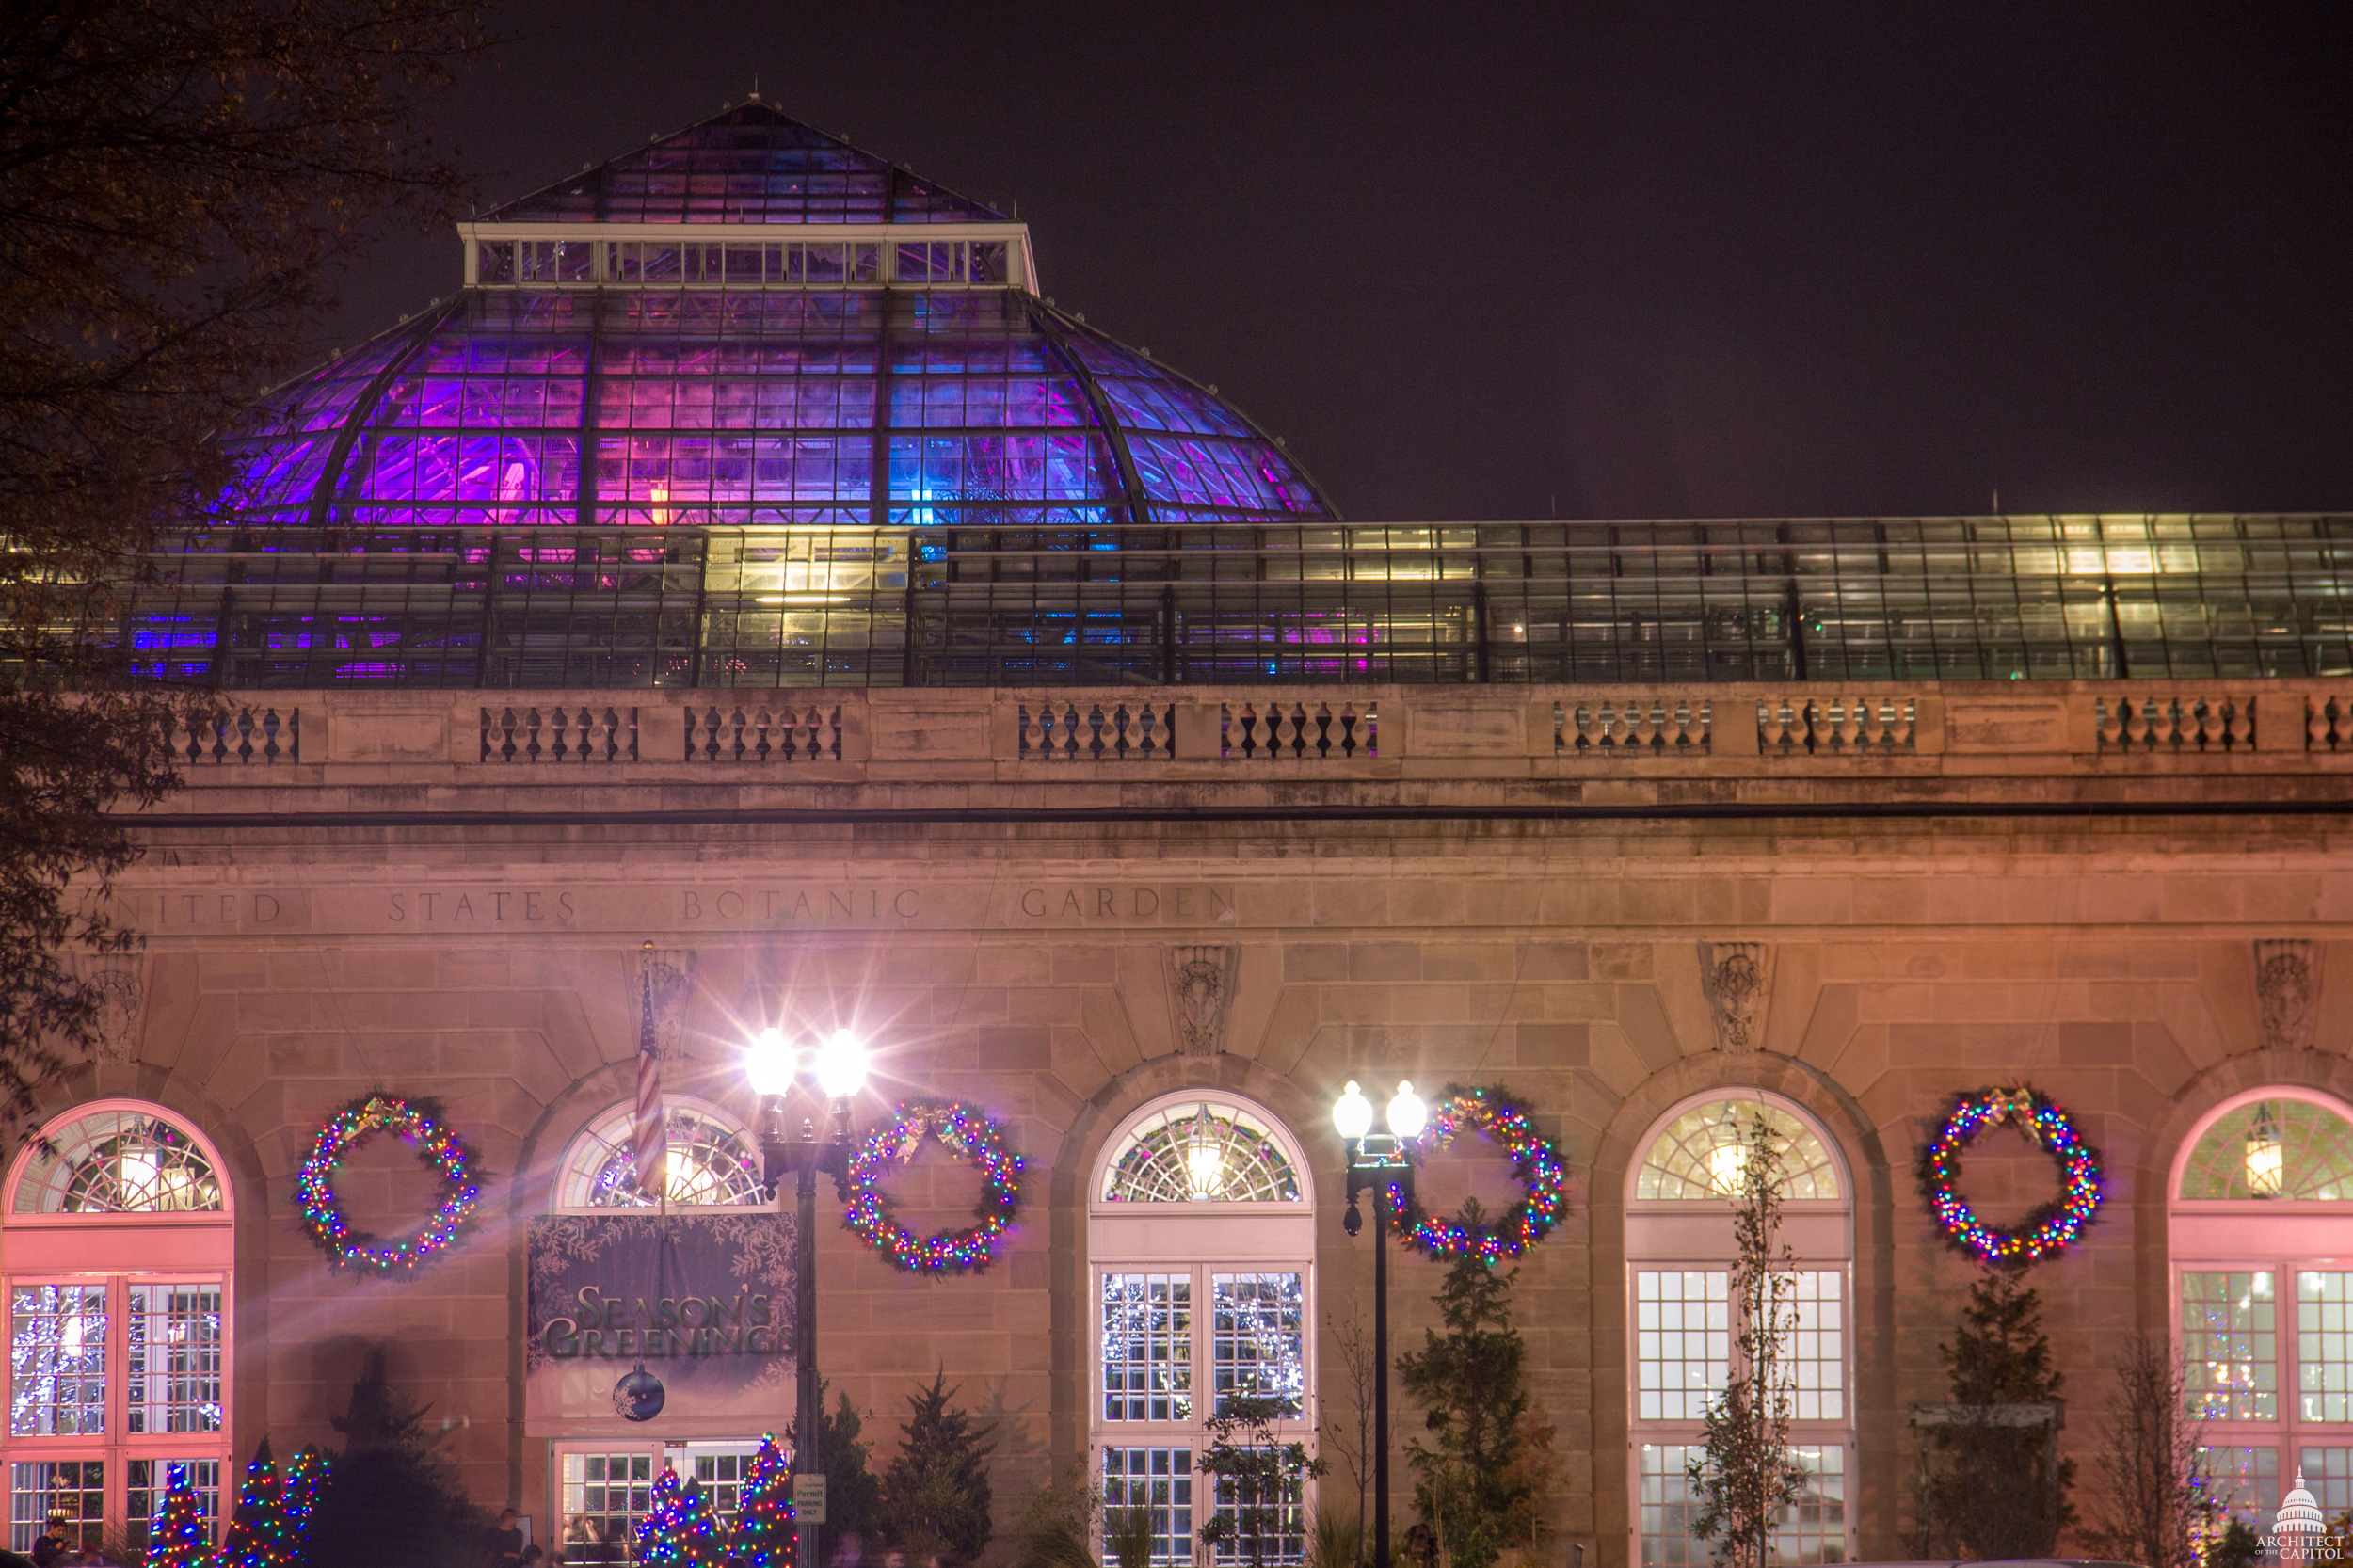 exterior of Botanic Garden decorated for the holidays